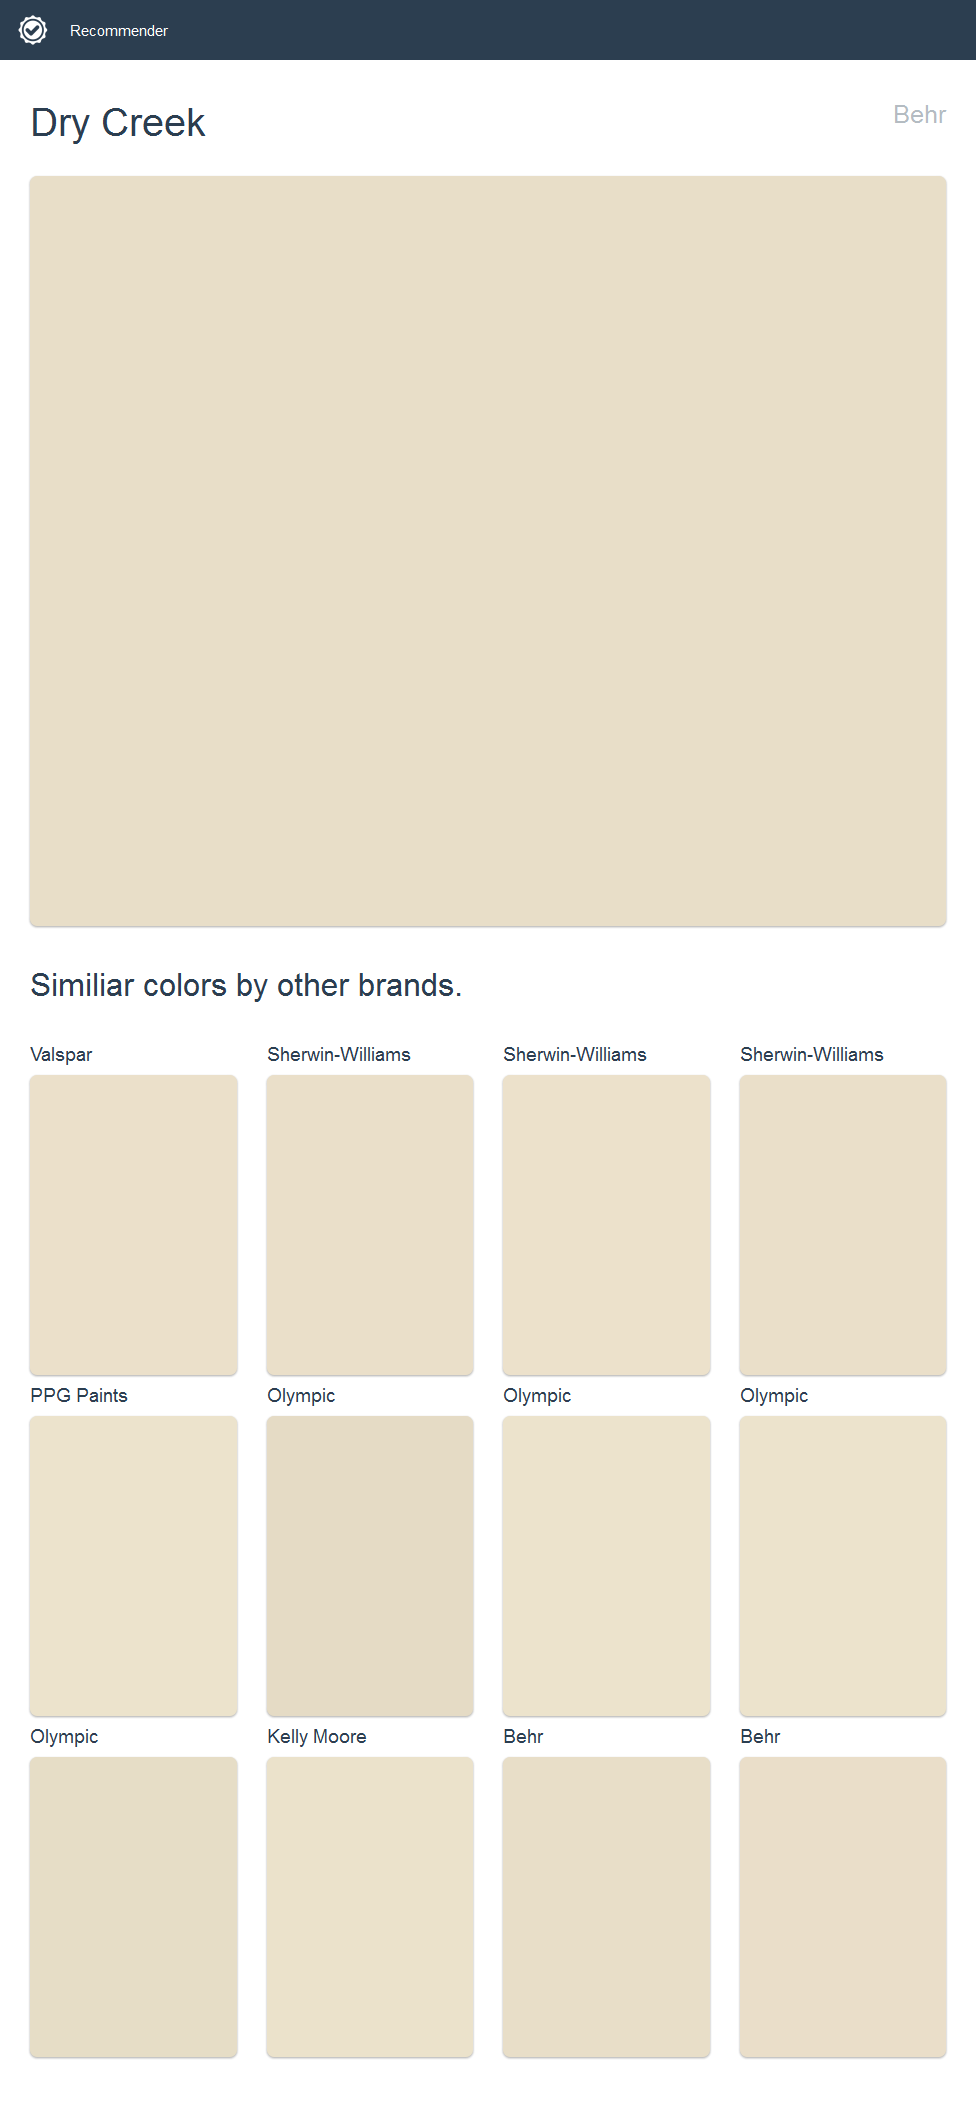 Dry Creek, Behr. Click the image to see similiar colors by other brands.